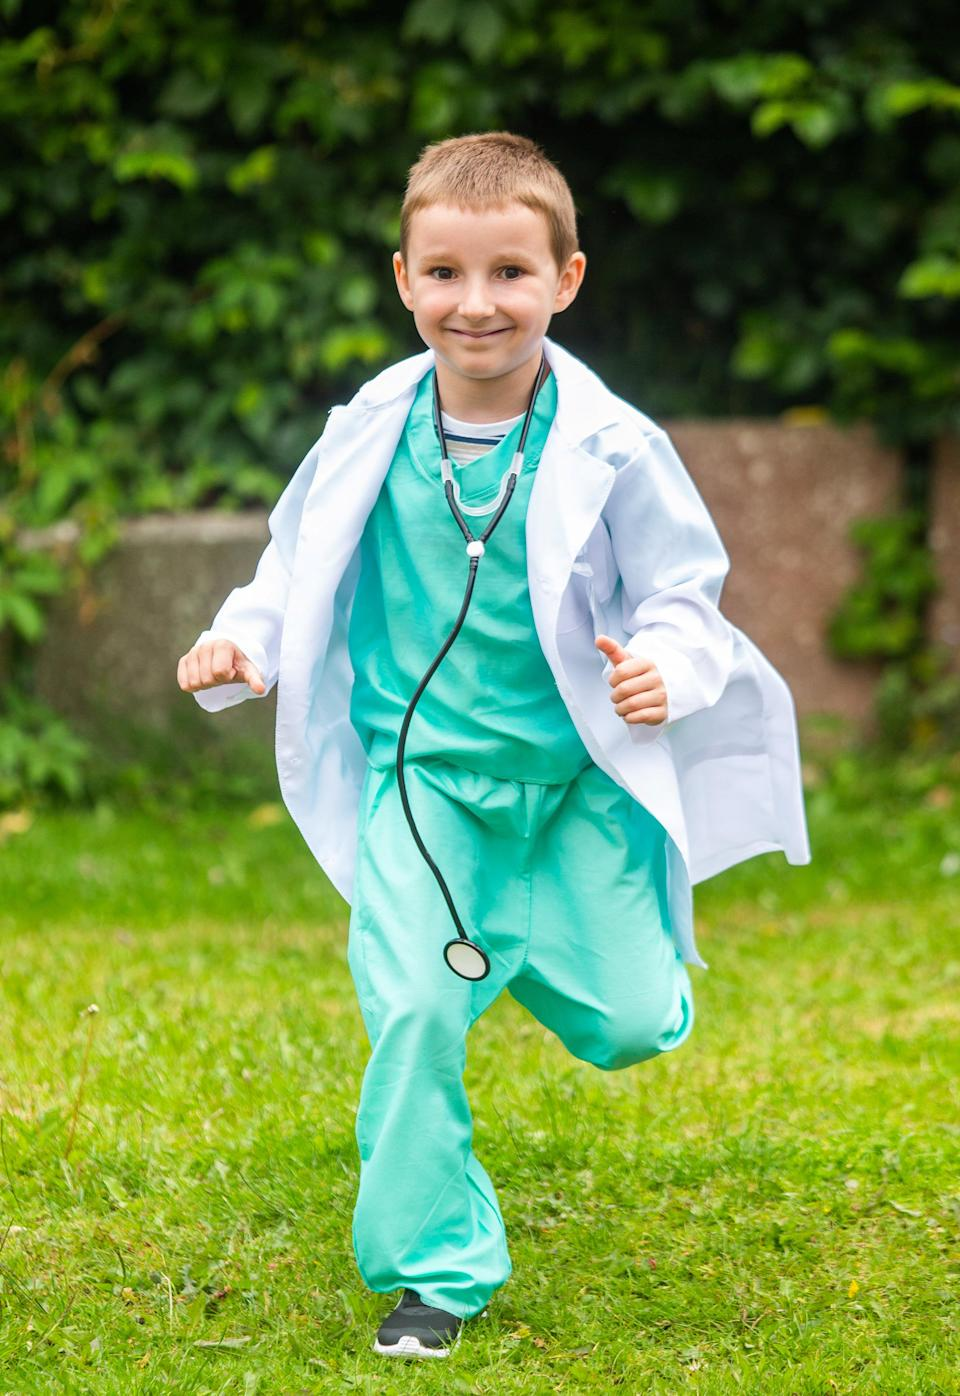 Ollie ran the last leg of his marathon as a doctor. (SWNS)